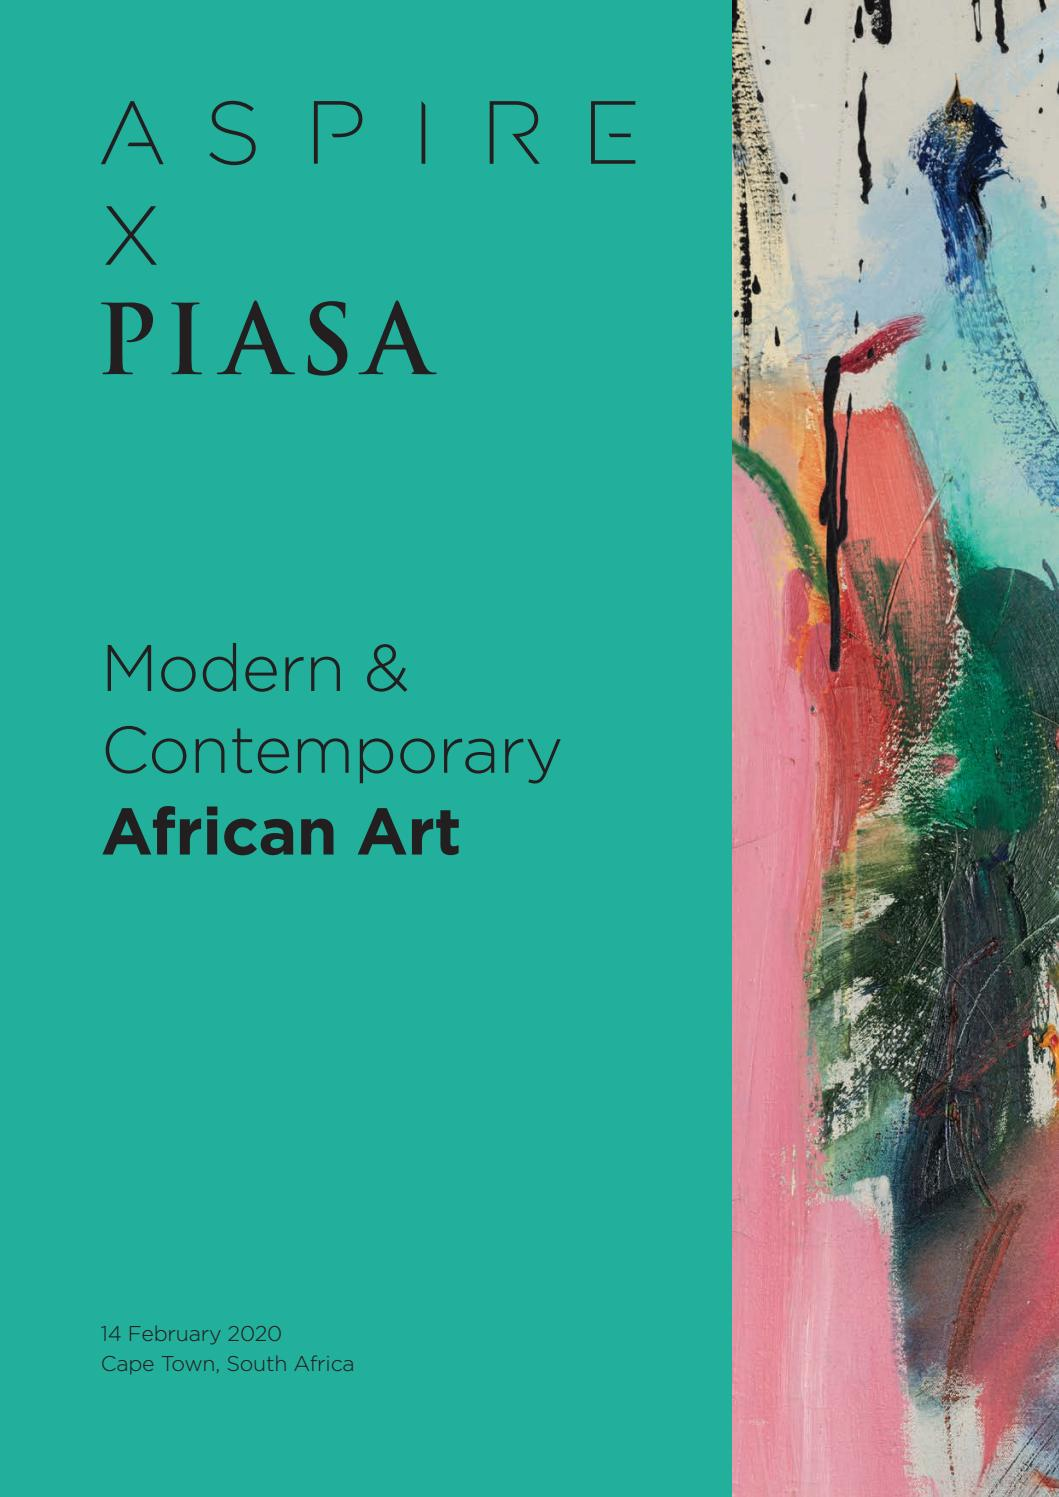 Aspire X Piasa February 2020 Auction Catalogue By Aspire Art Auctions Issuu